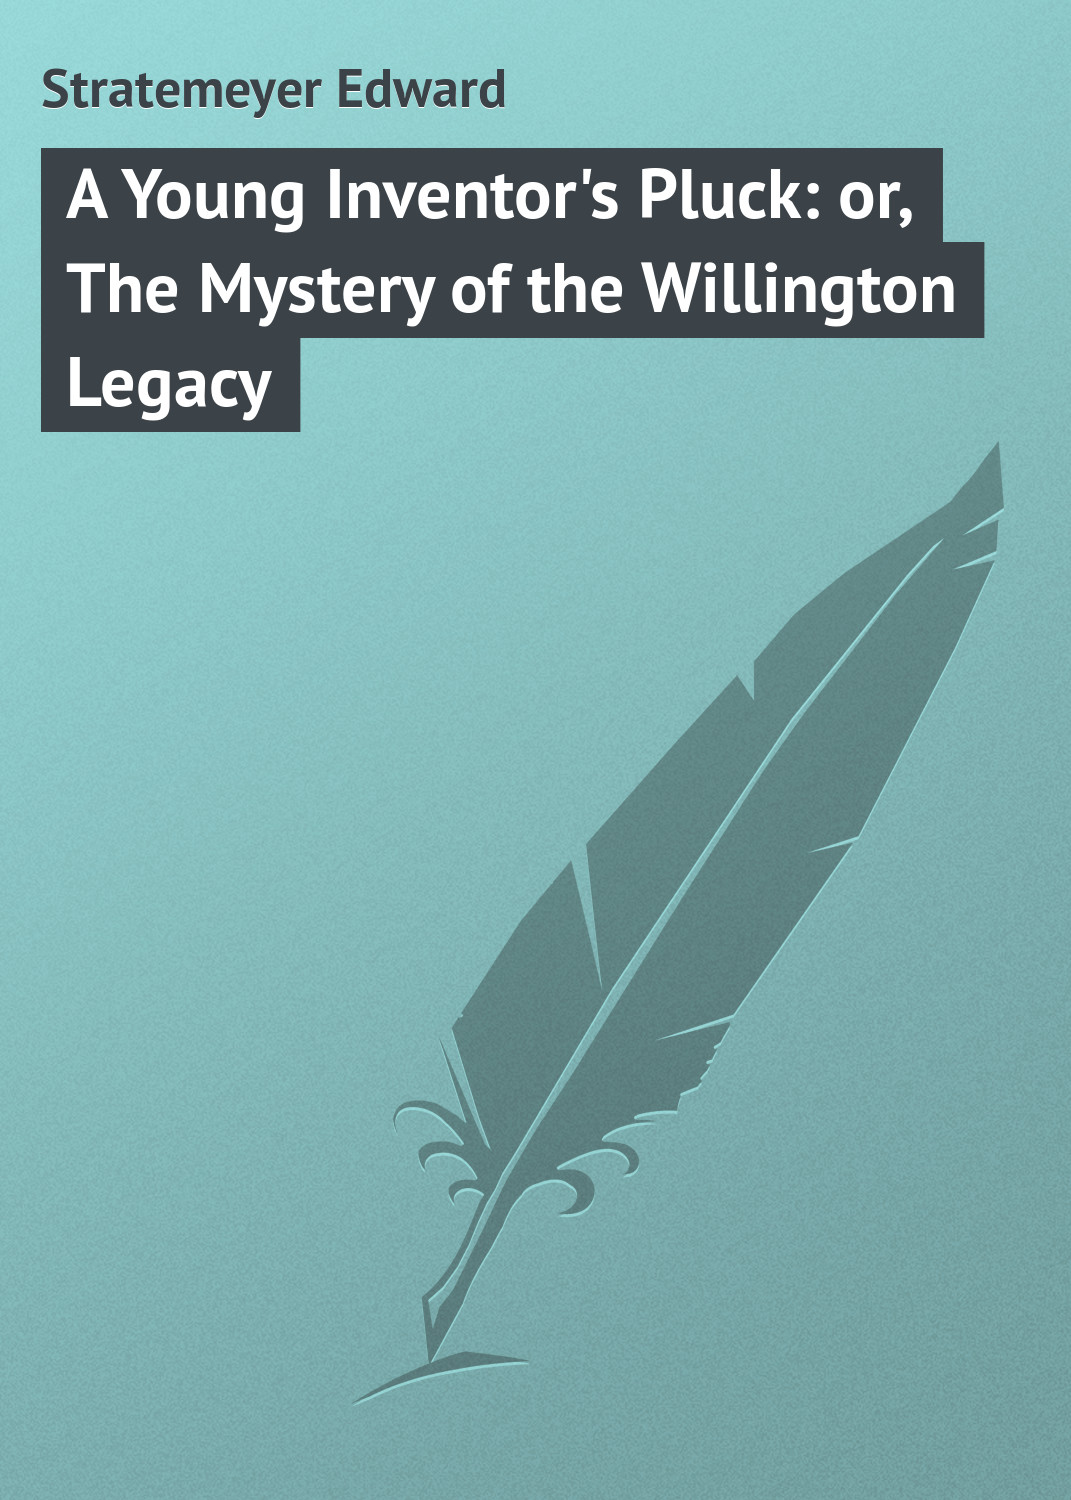 Stratemeyer Edward A Young Inventor's Pluck: or, The Mystery of the Willington Legacy